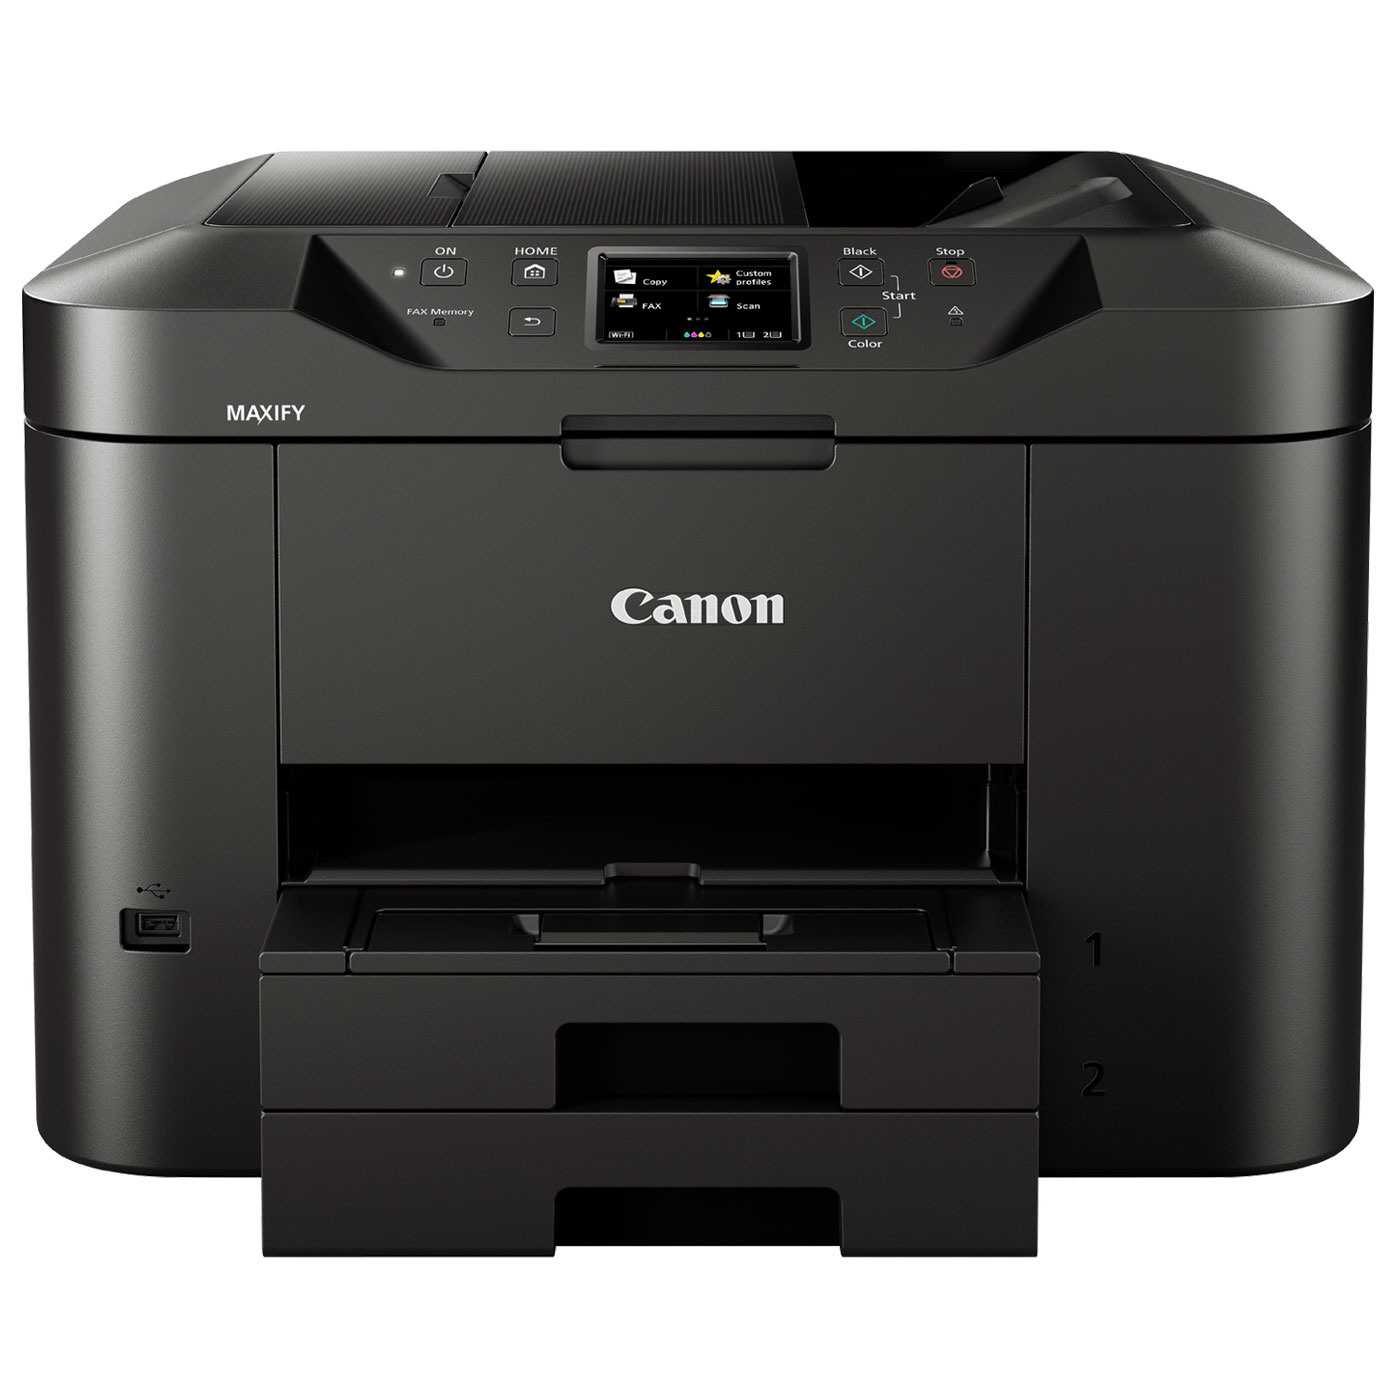 canon maxify mb2750 imprimante multifonction canon sur. Black Bedroom Furniture Sets. Home Design Ideas